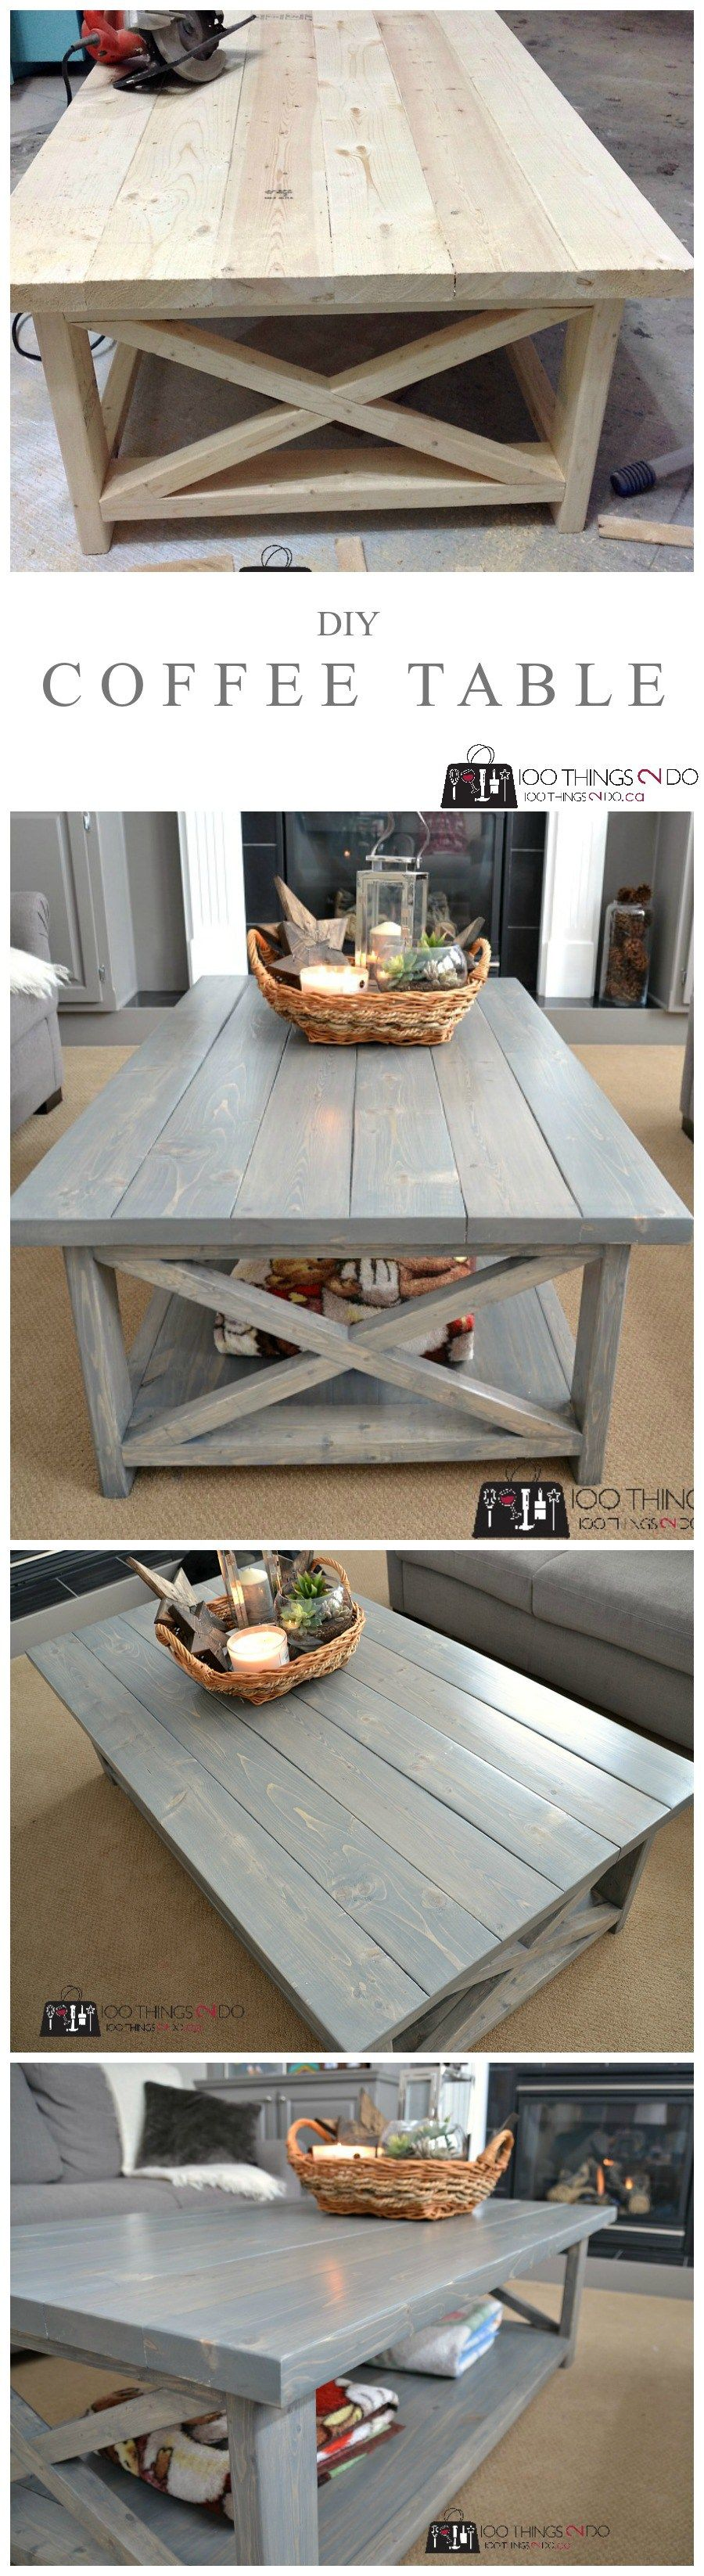 DIY Coffee Table - Rustic X | Coffee, Diy coffee table and DIY ...